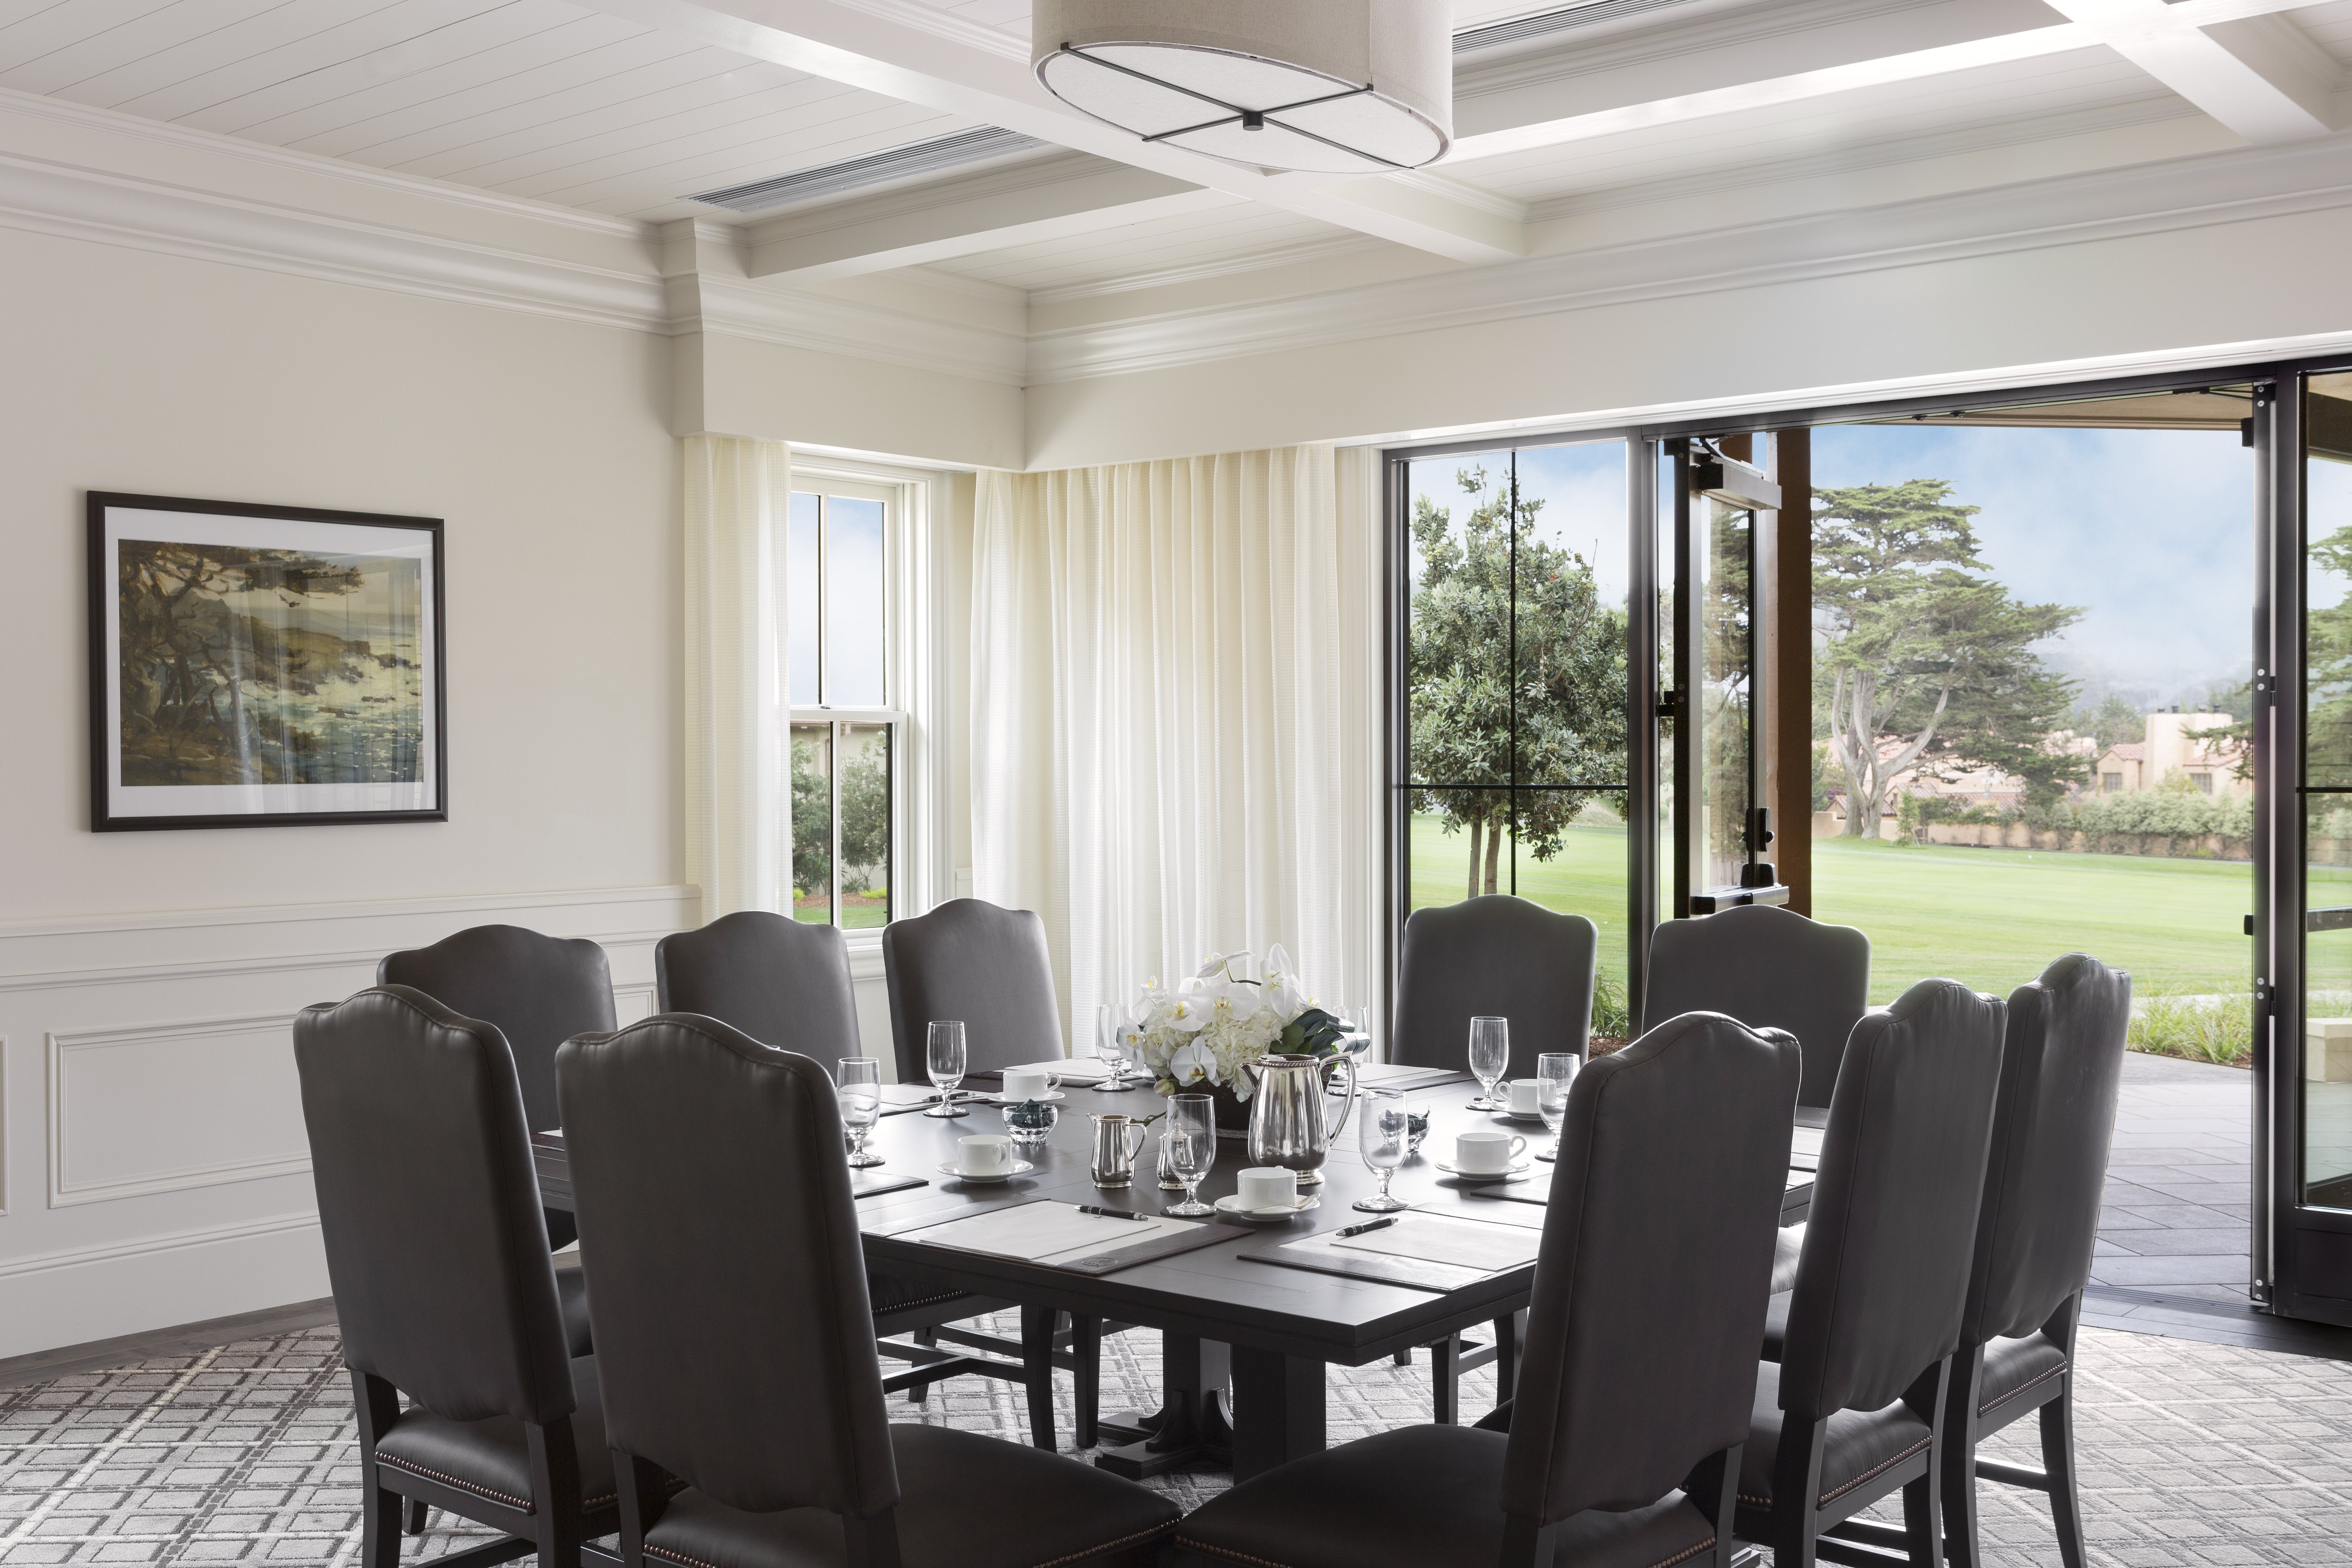 Fairway One Boardroom